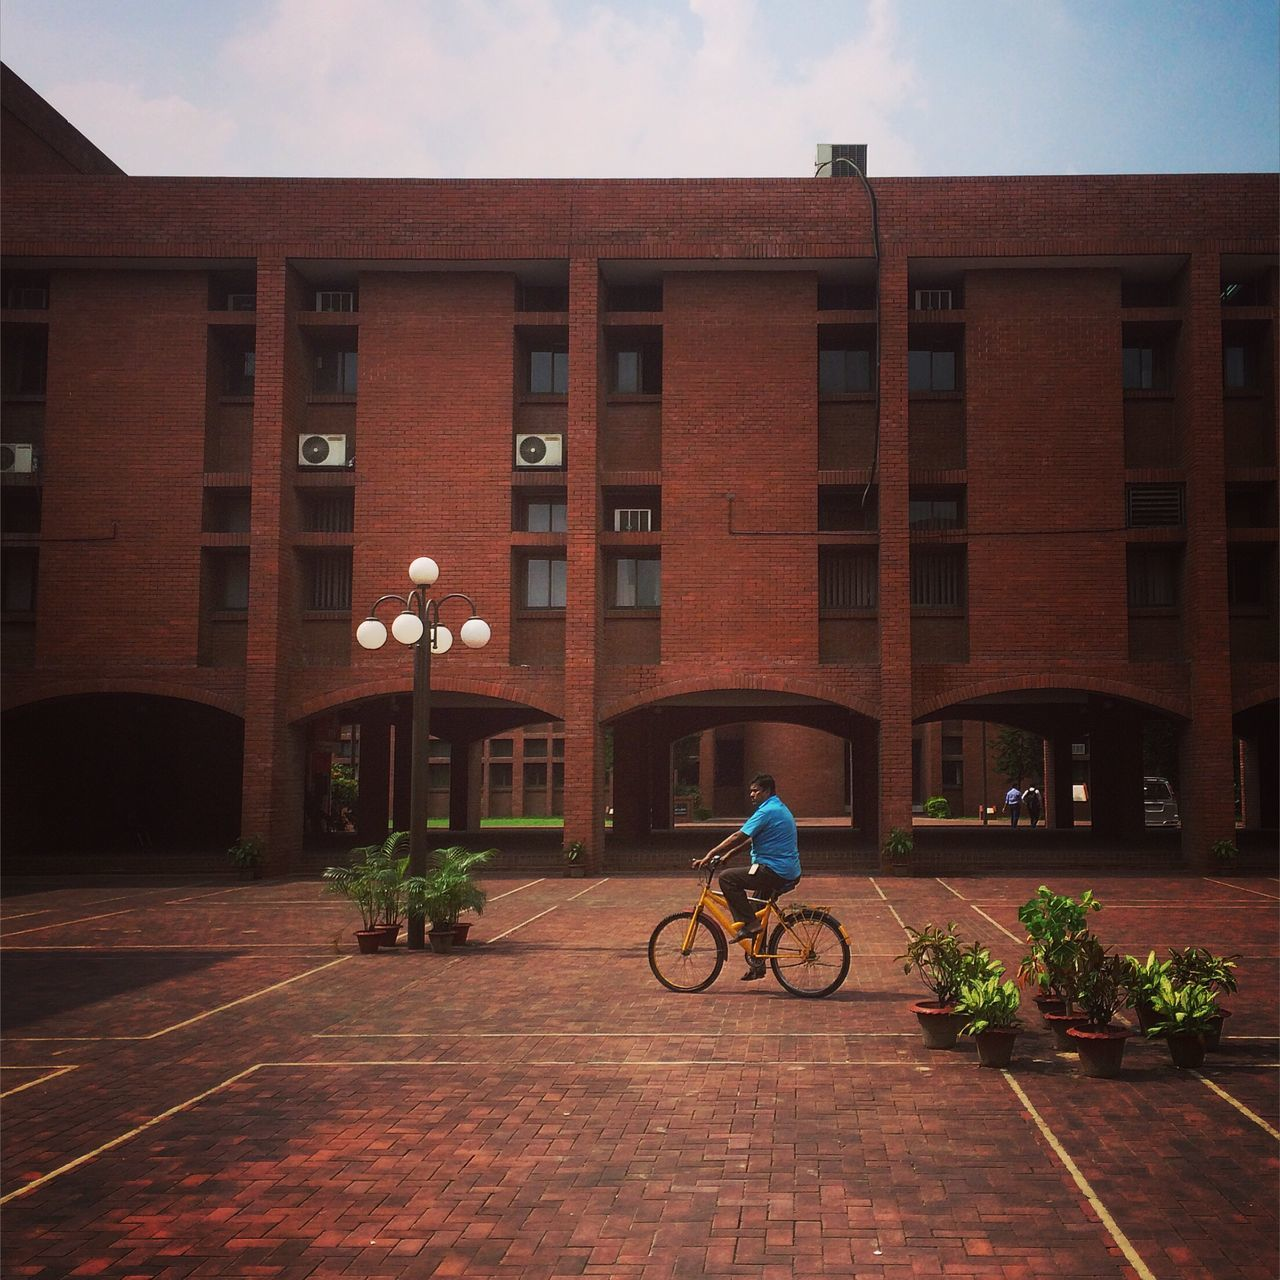 Was there Iut University Campus Architecture Architecture_collection Man Cycling Red Yellow EyeEm Best Shots Dhaka, Bangladesh Bangladeshi EyeEm Bangladesh Bangladesh Iphoneonly